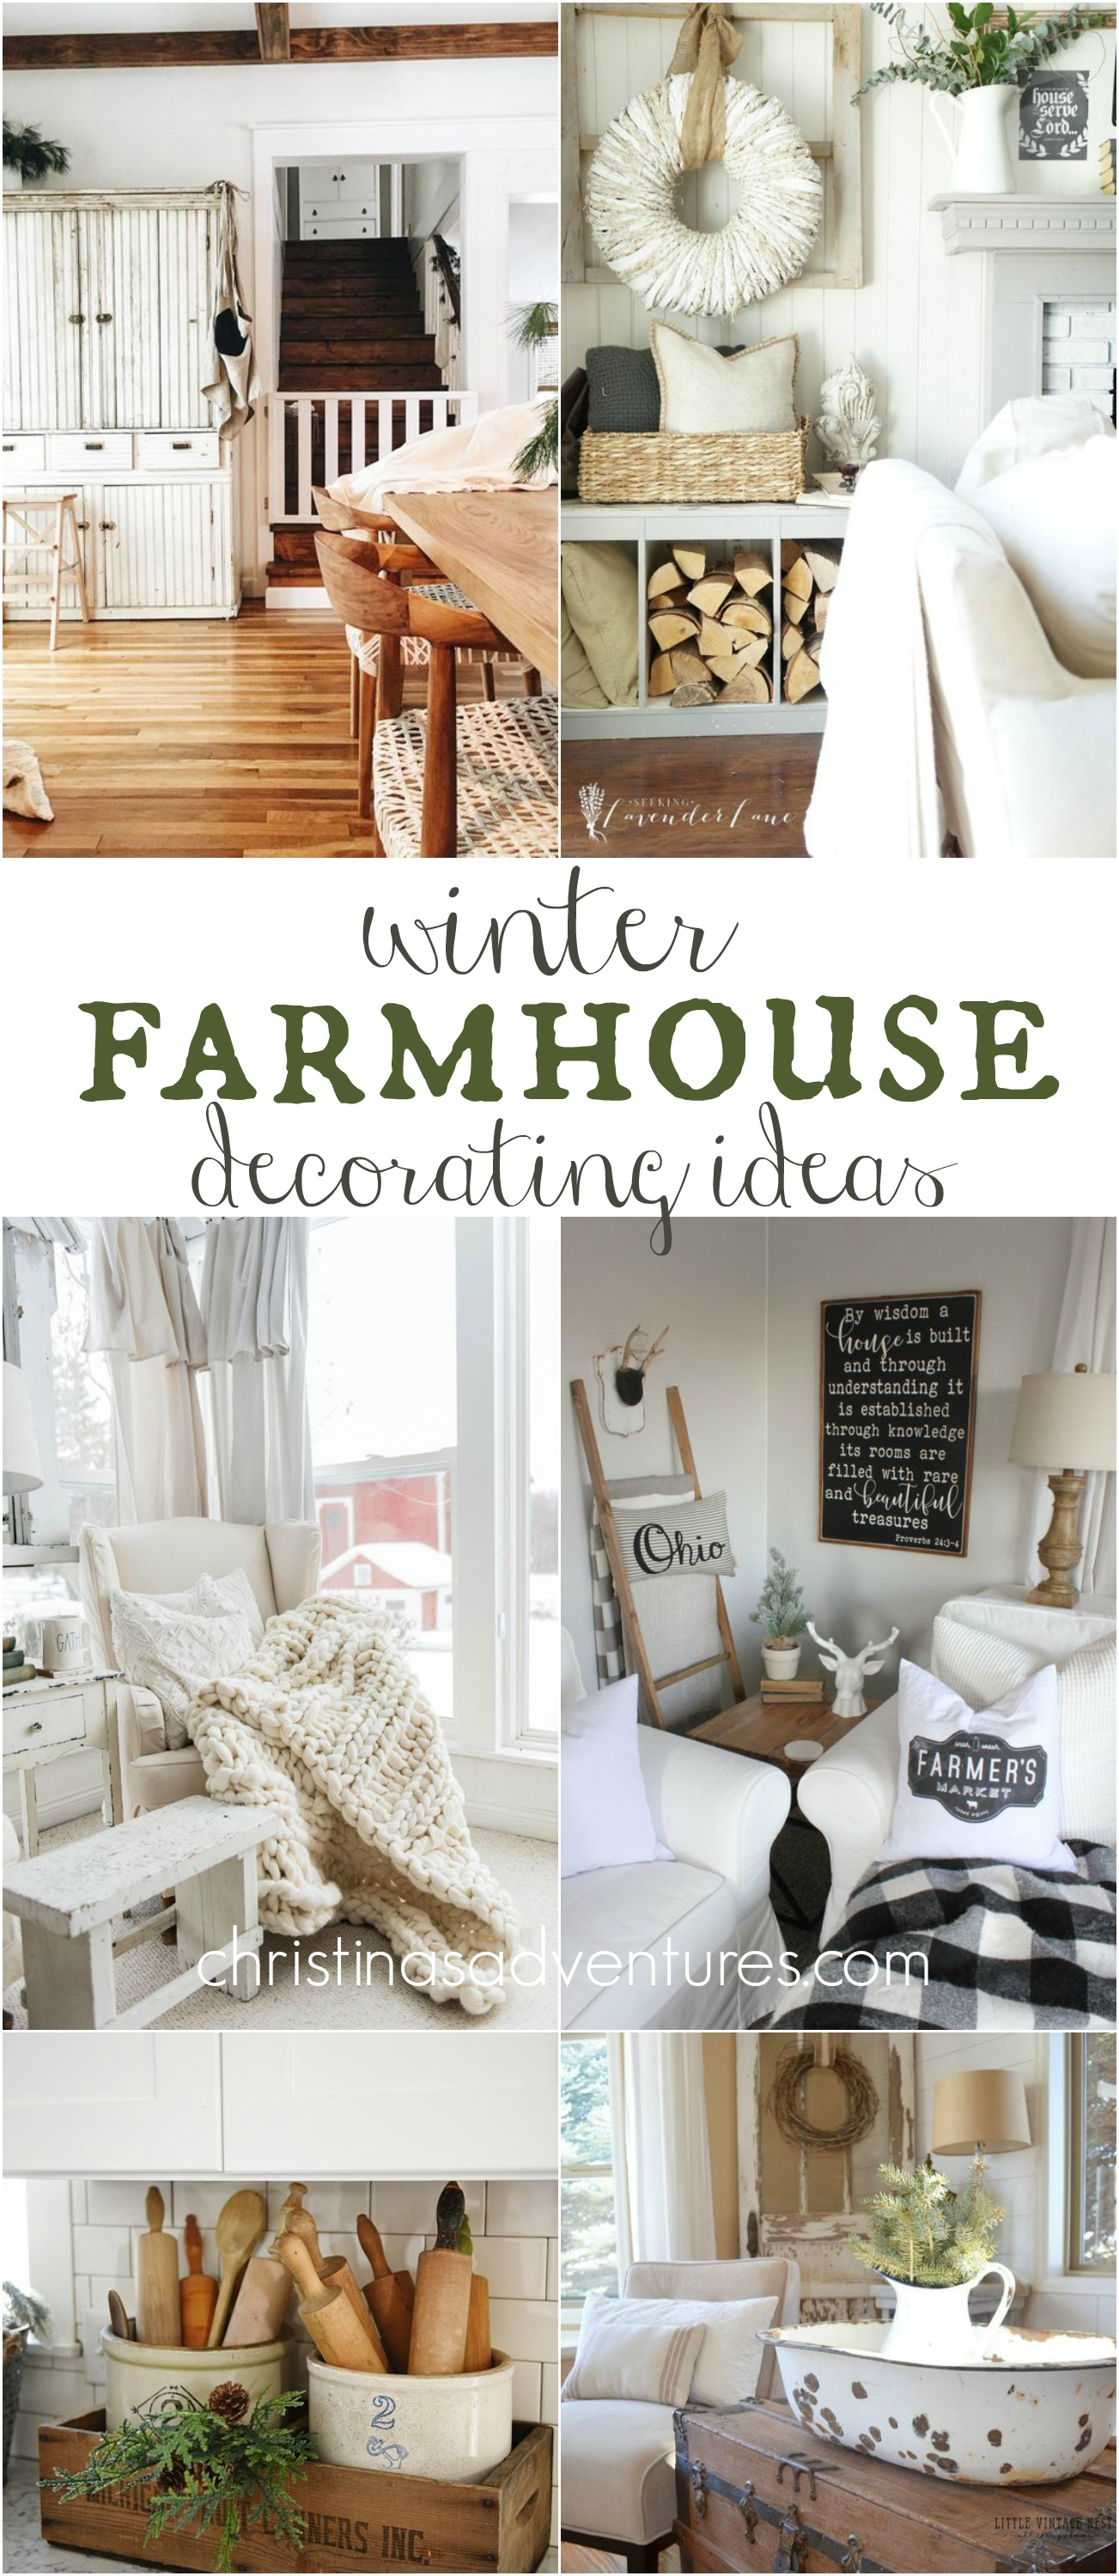 Salient Some Decor To Add To Your House This Checkout My Secret Sources To Find Farmhouse Wreaths Lanterns Winter Farmhouse Decorating Ideas Christinas Adventures If Looking home decor Farmhouse Home Decor